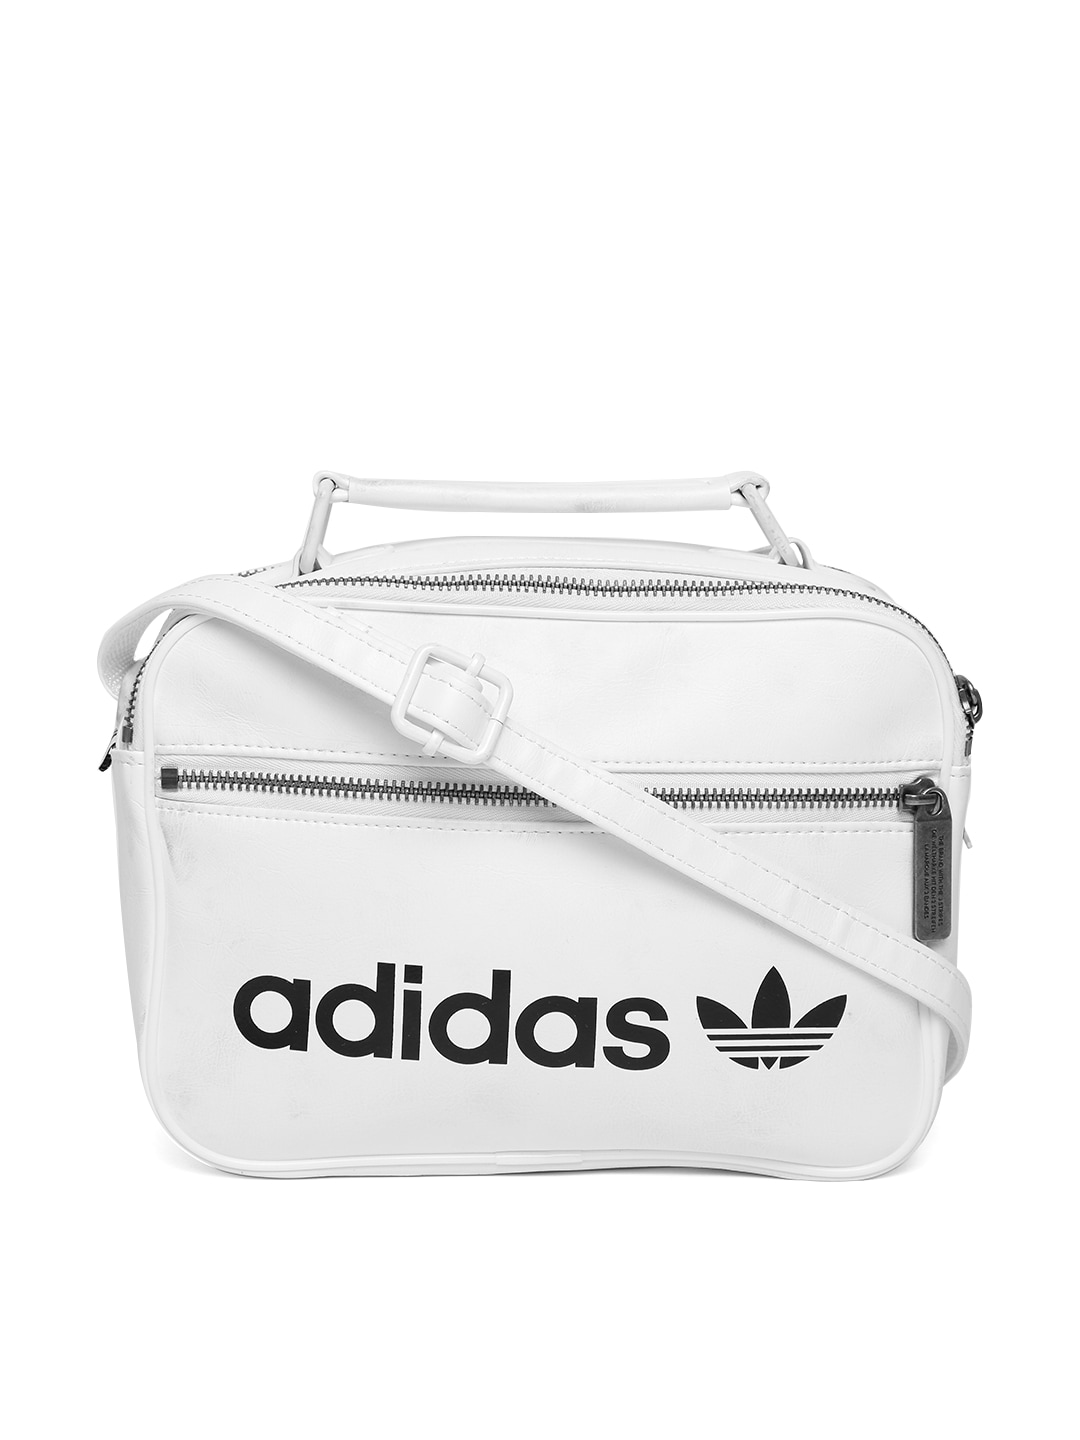 Adidas Bags Hat - Buy Adidas Bags Hat online in India 5a8c9e137f441